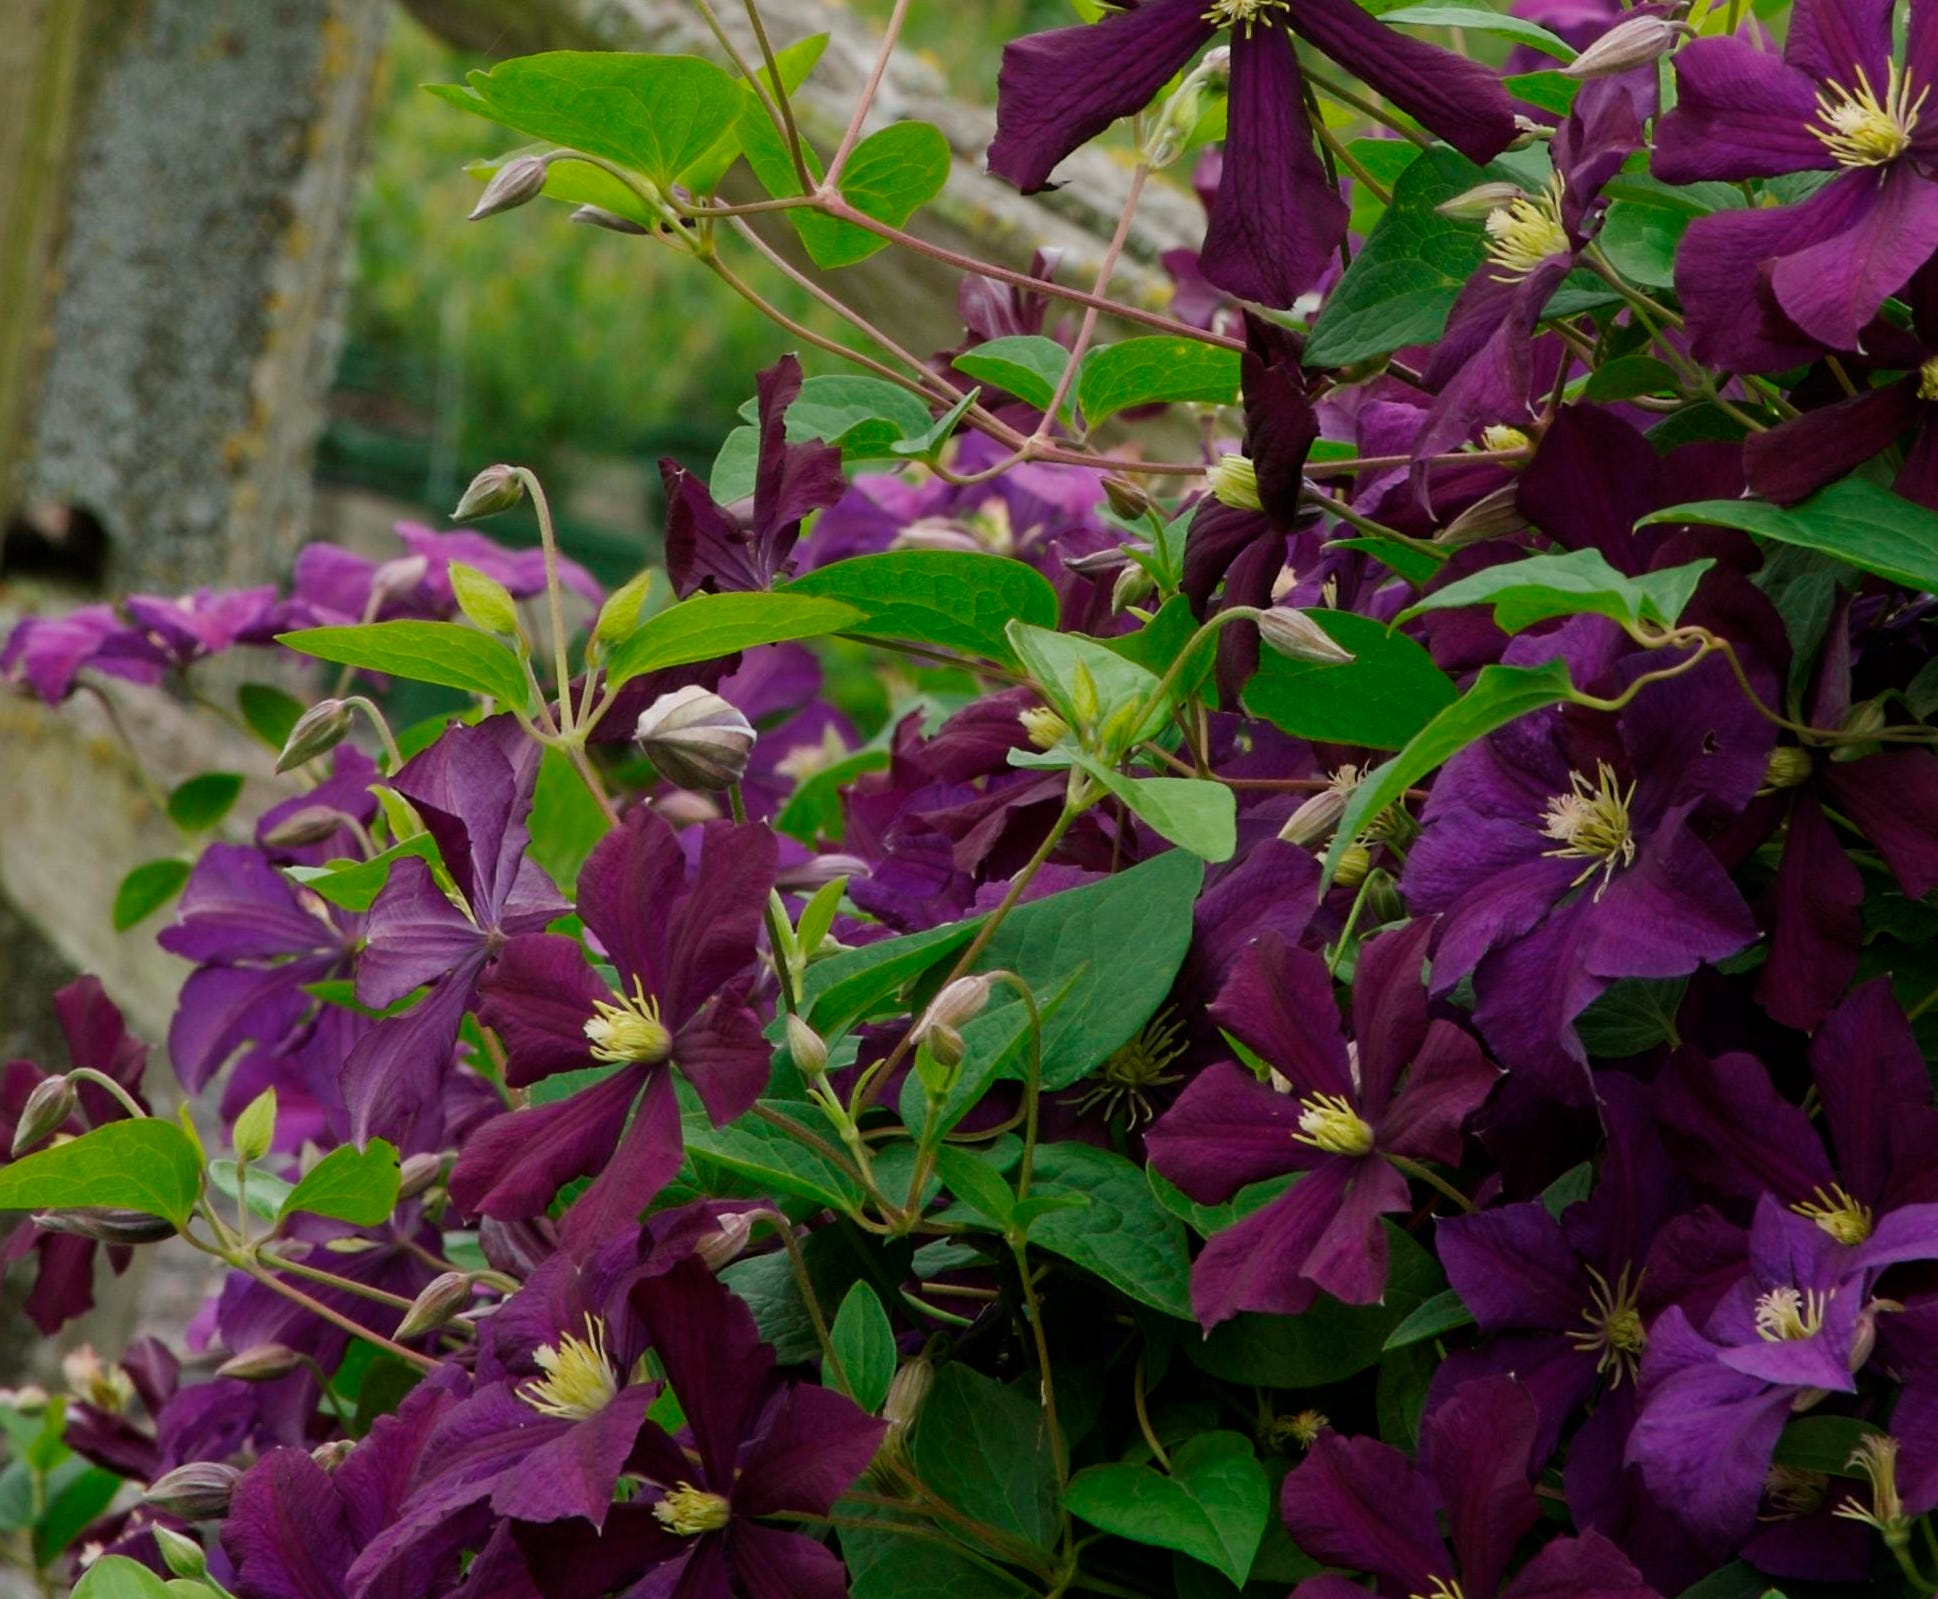 Clematis expert Deborah Hardwick highly recommends 'Etoile Violette' for Midwestern gardens because of its beauty, long bloom period and easy care.